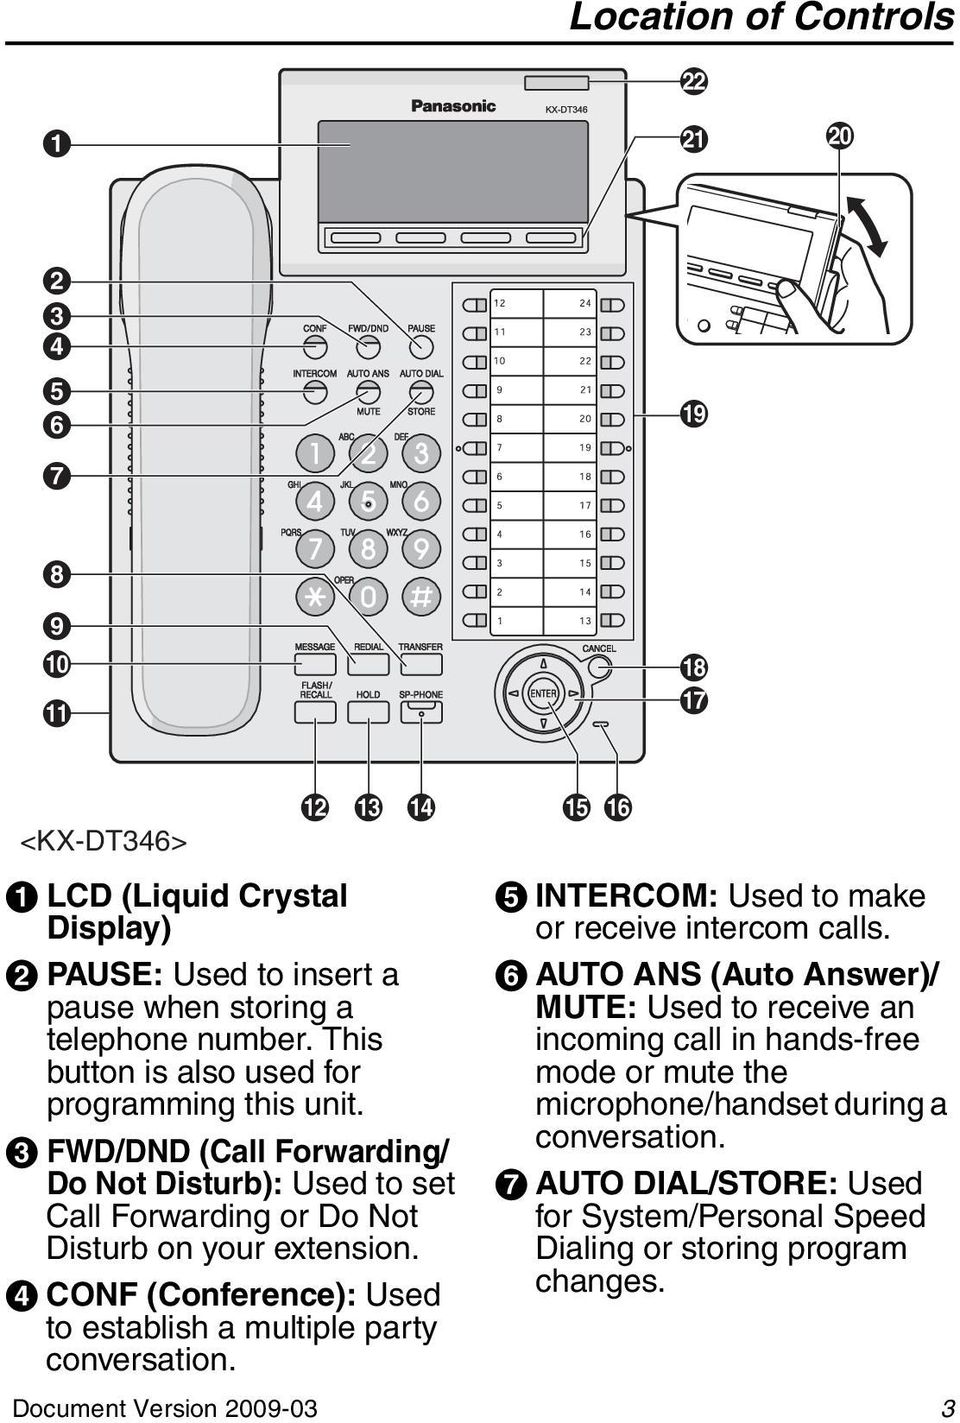 Quick Reference Guide Digital Proprietary Telephone - PDF